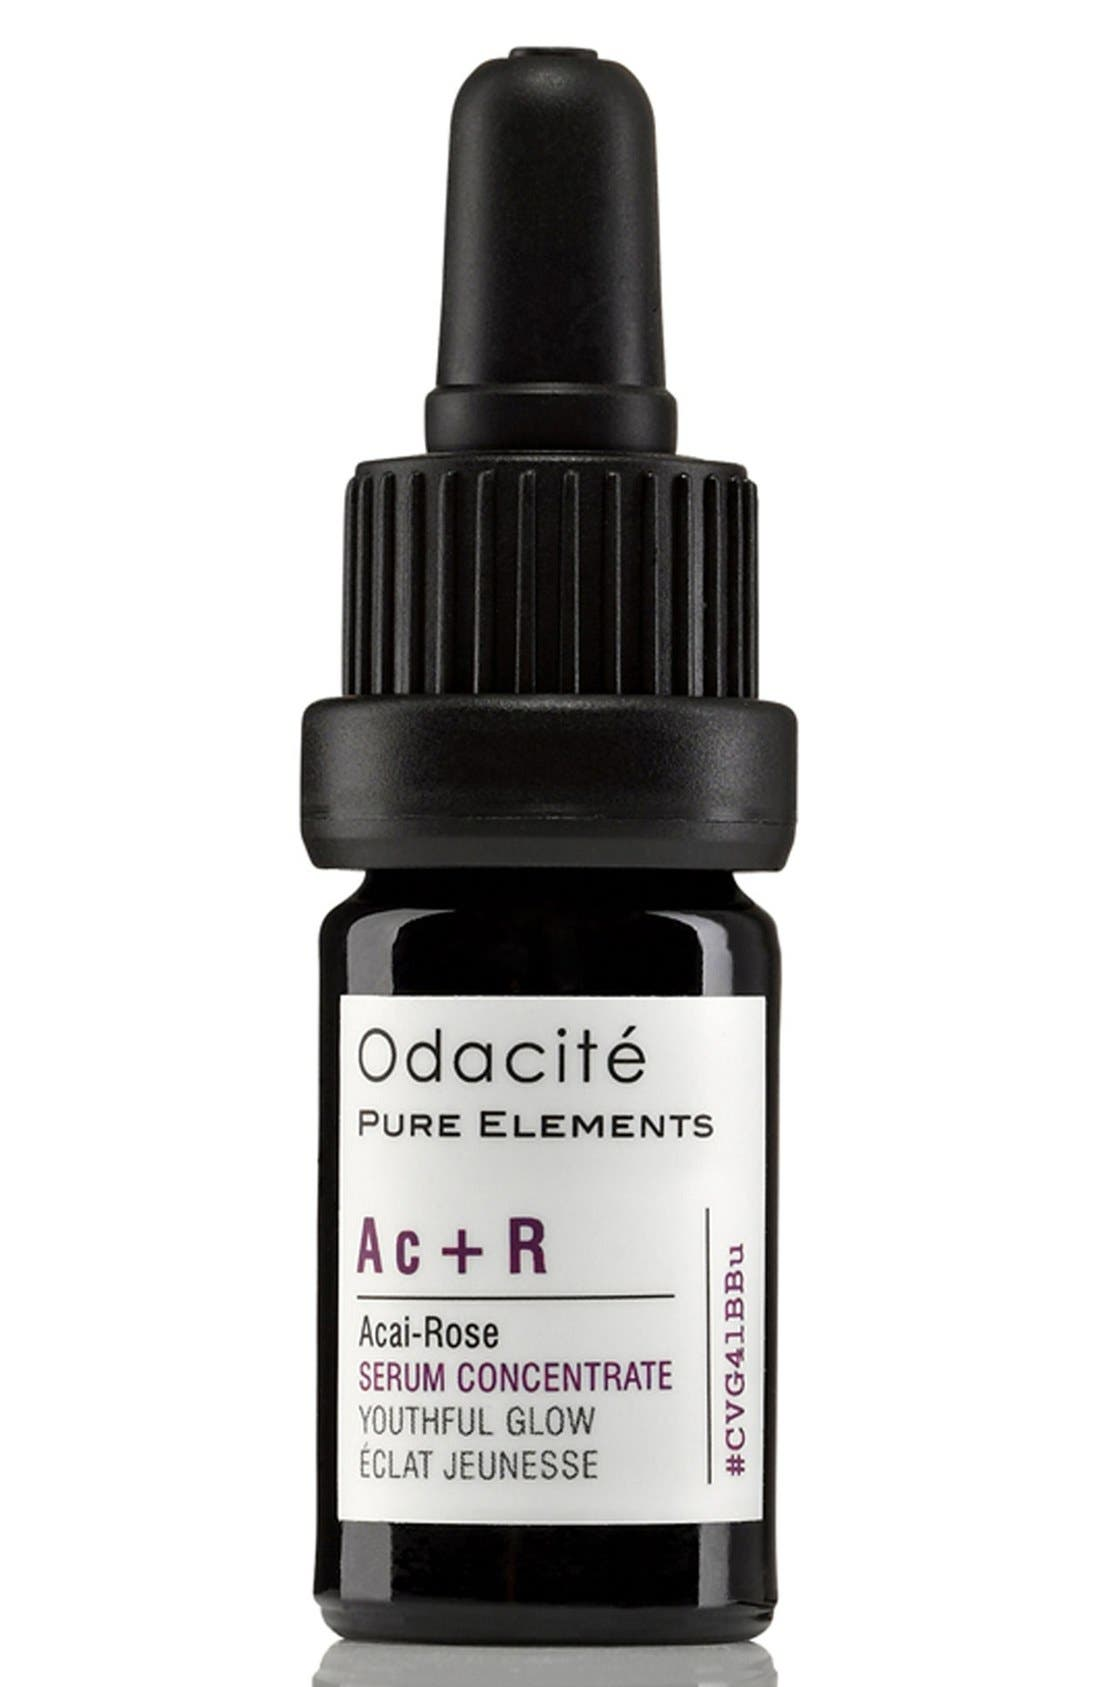 Odacité Ac + R Açai-Rose Youthful Glow Facial Serum Concentrate